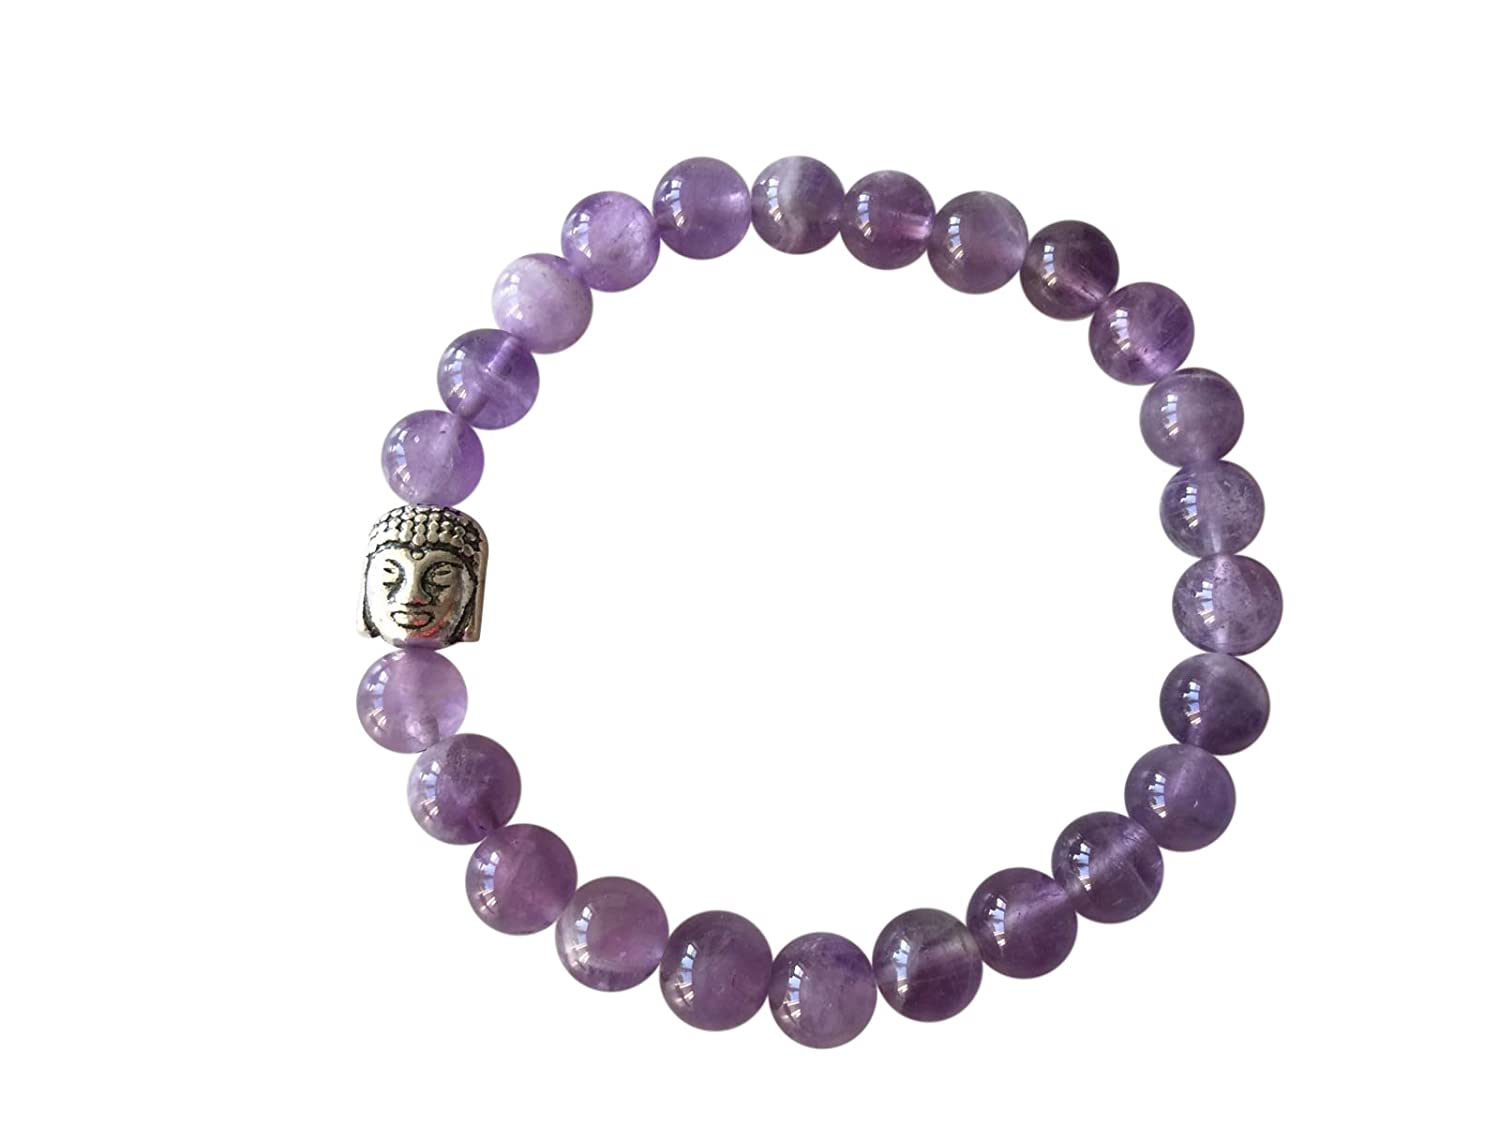 'Body Mind and Soul' Genuine Amethyst Gemstone Chakra Bead Buddha Bracelet ~ Natural Stones Ethically Sourced from Western Hills of India ~ Handmade Jewellery in Gift Box …